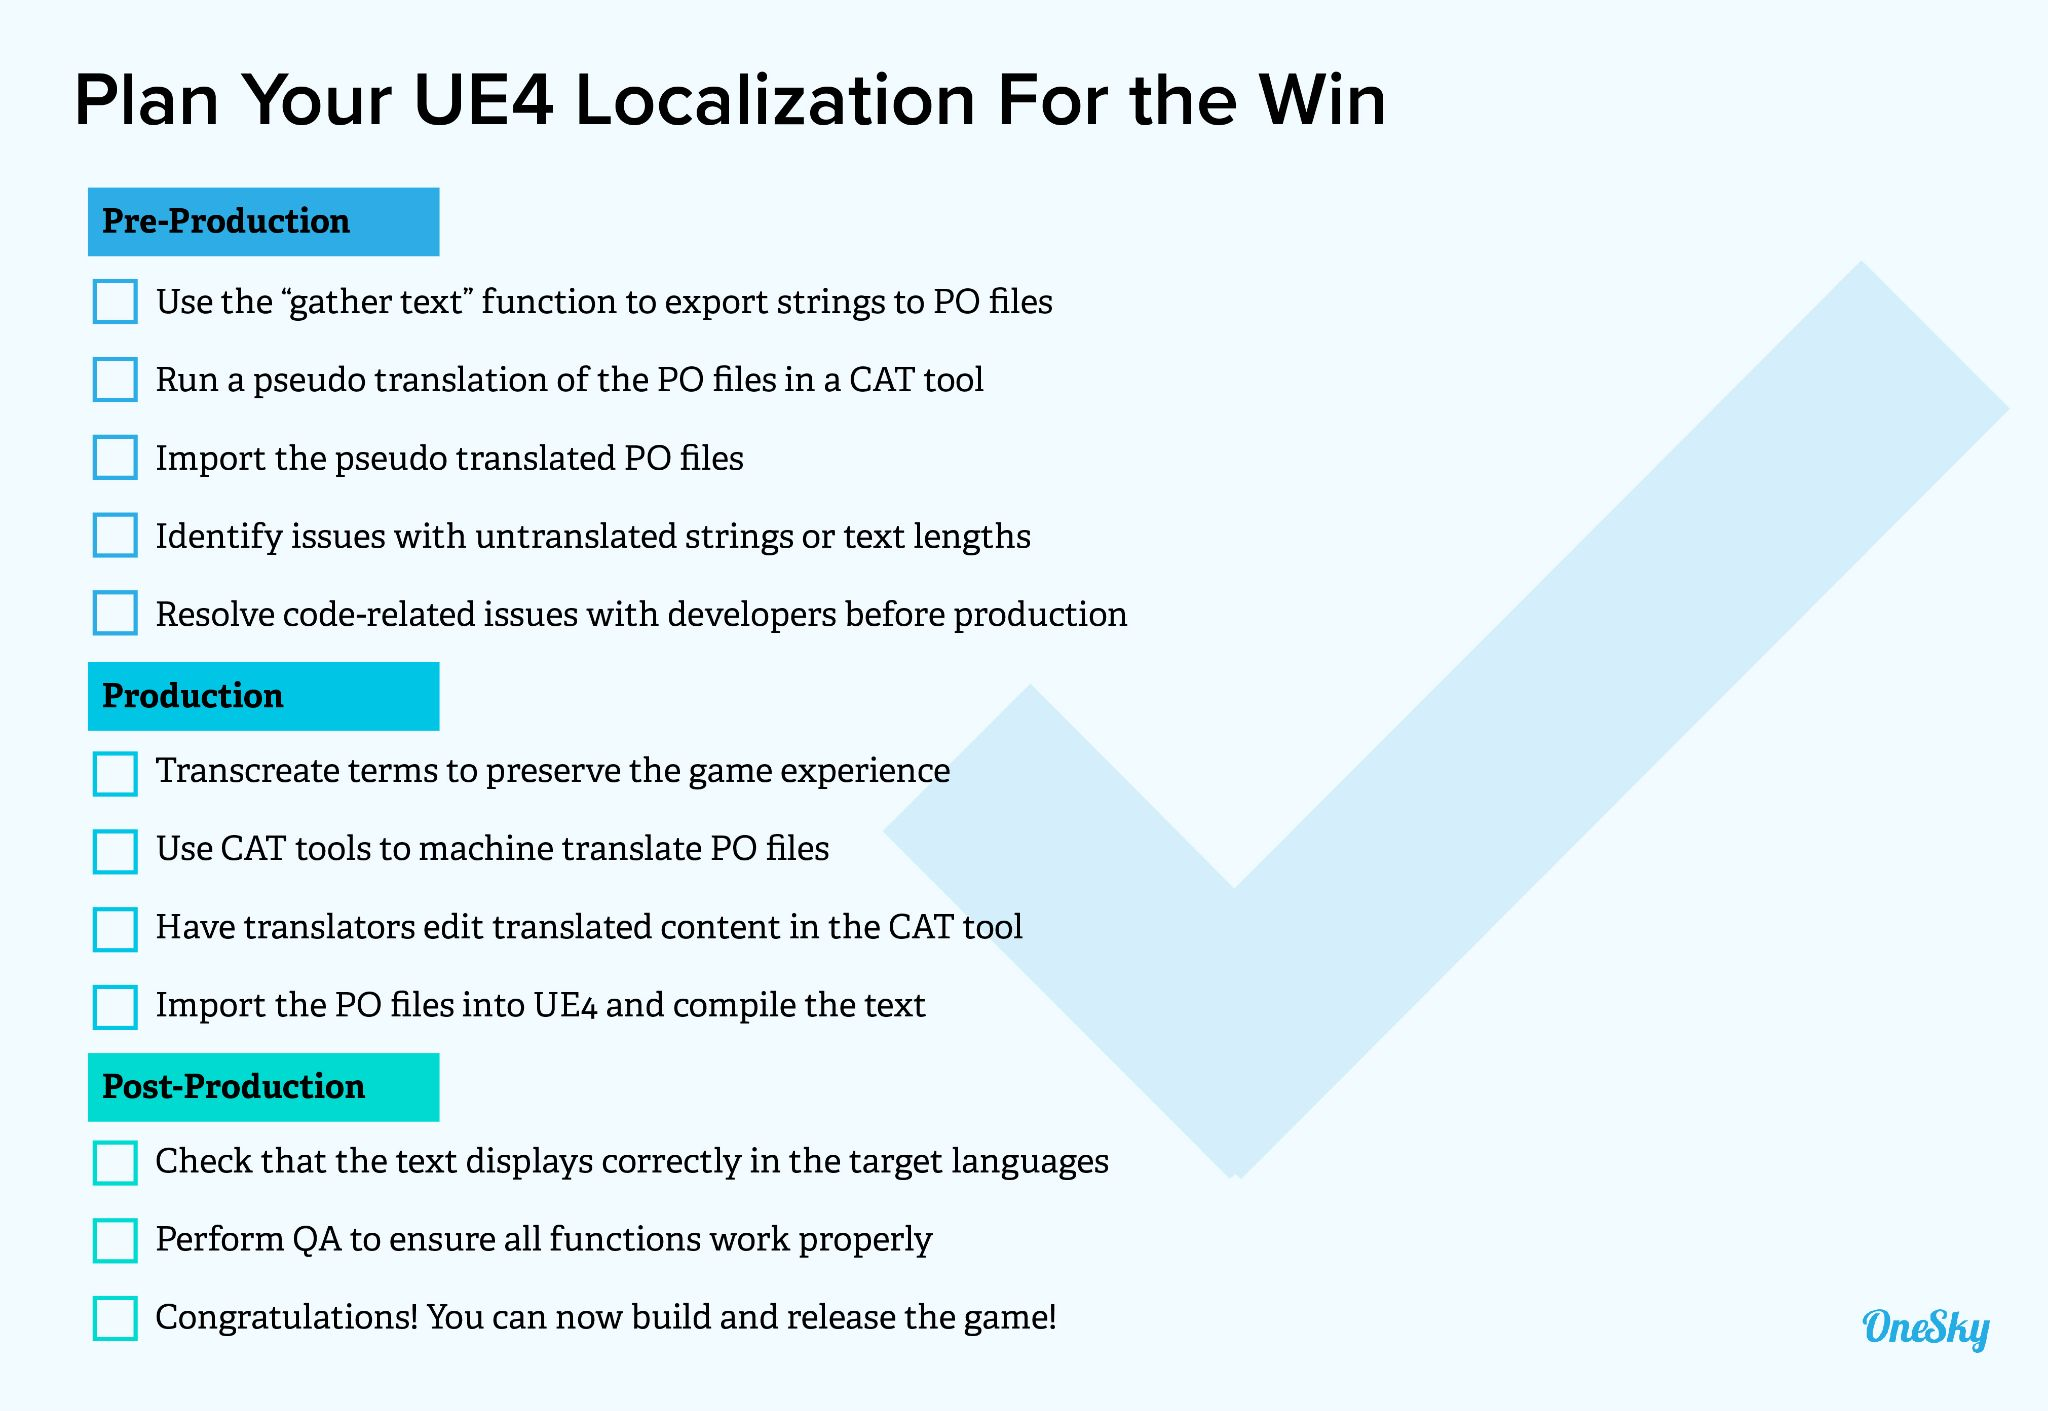 Plan Out Your UE4 Localization Process